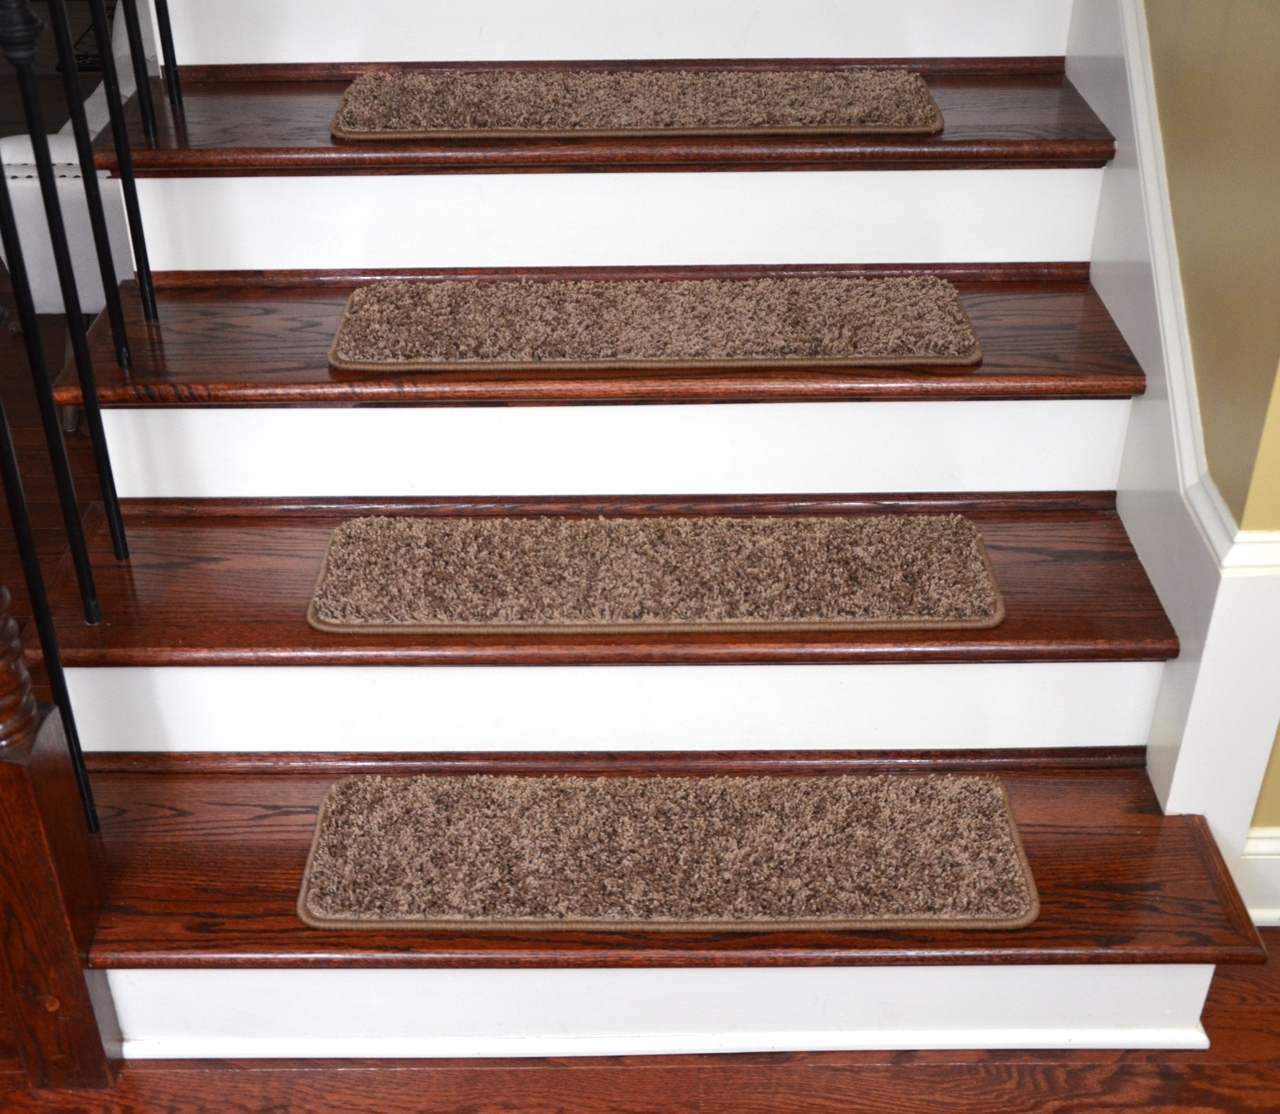 Dean Premium Stair Gripper Tape Free Non Slip Pet Friendly Diy Regarding Braided Stair Tread Rugs (Image 7 of 15)